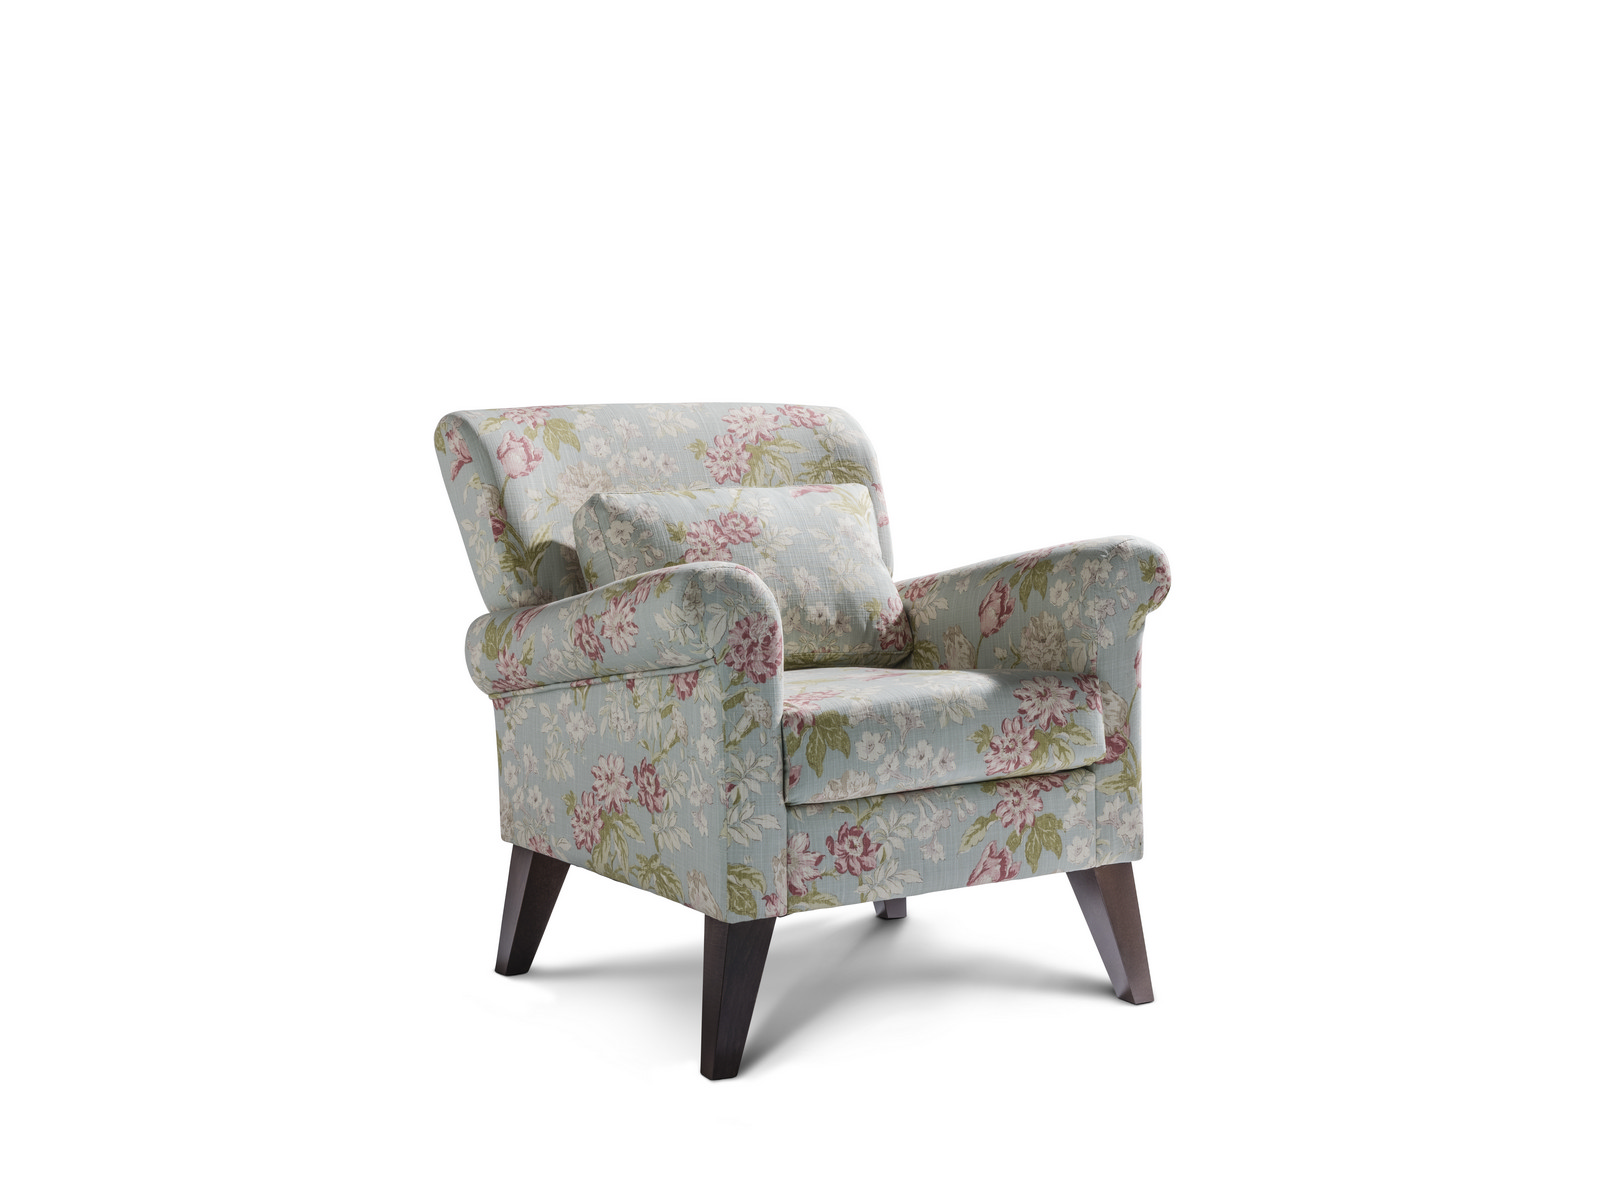 Affordable Egg Chair Bloxham Accent Chair Campagna Duck Egg Dark Legs Fabric